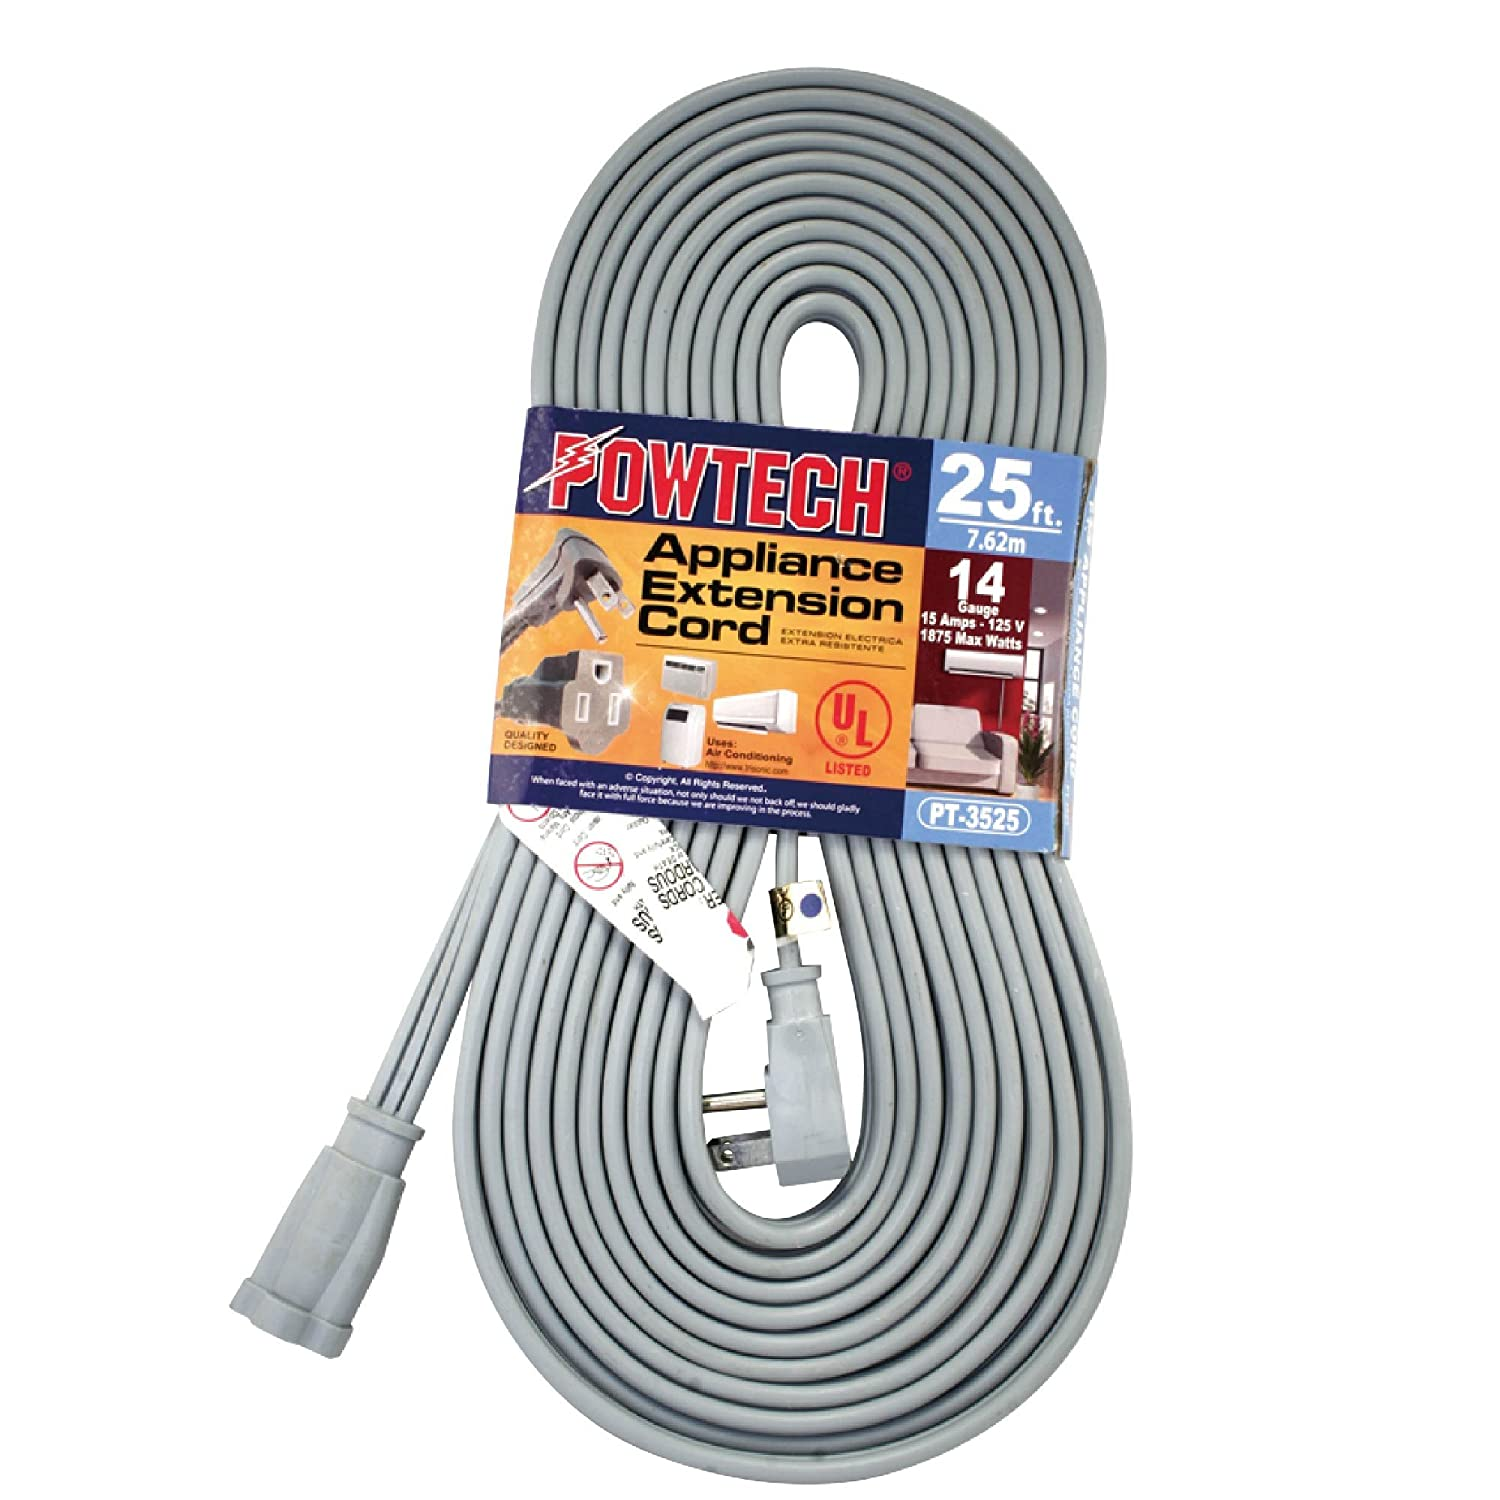 POWTECH Heavy duty 25 FT Air Conditioner and Major Appliance Extension Cord UL Listed 14 Gauge, 125V, 15 Amps, 1875 Watts GROUNDED 3-PRONGED CORD